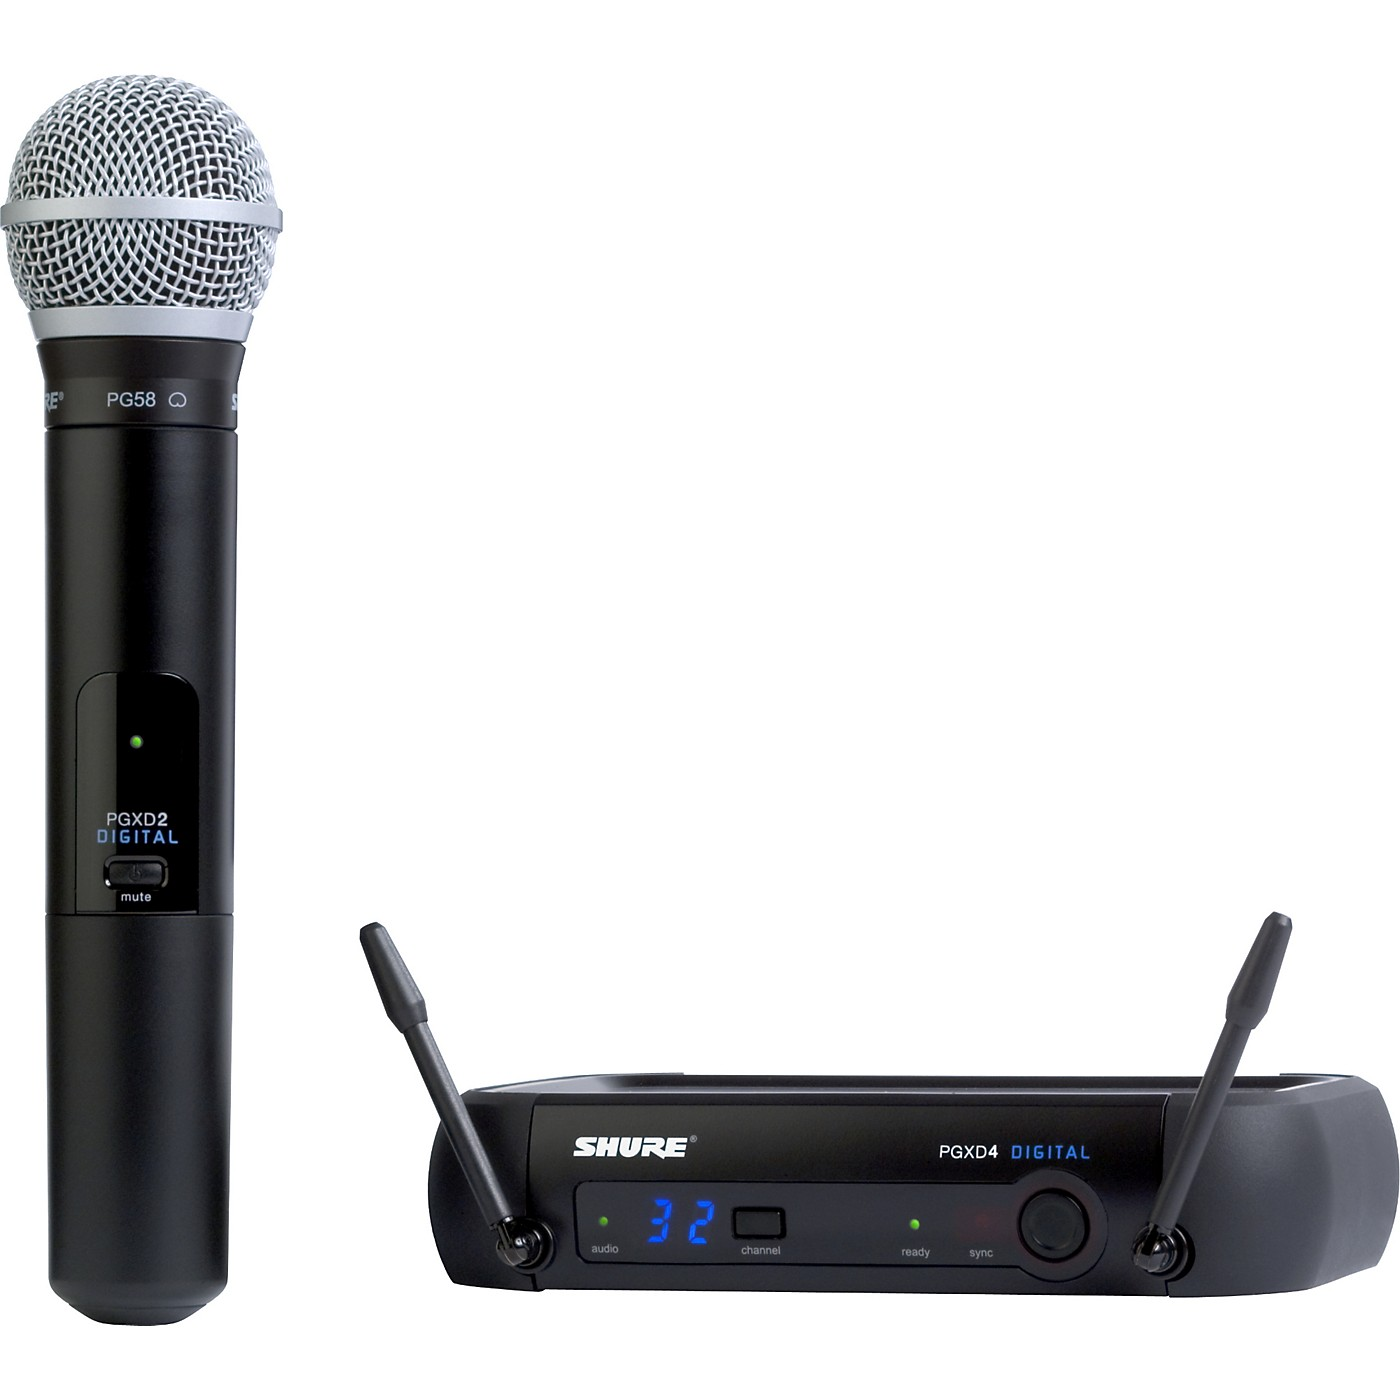 Shure PGXD24/PG58 Digital Wireless System with PG58 Mic thumbnail